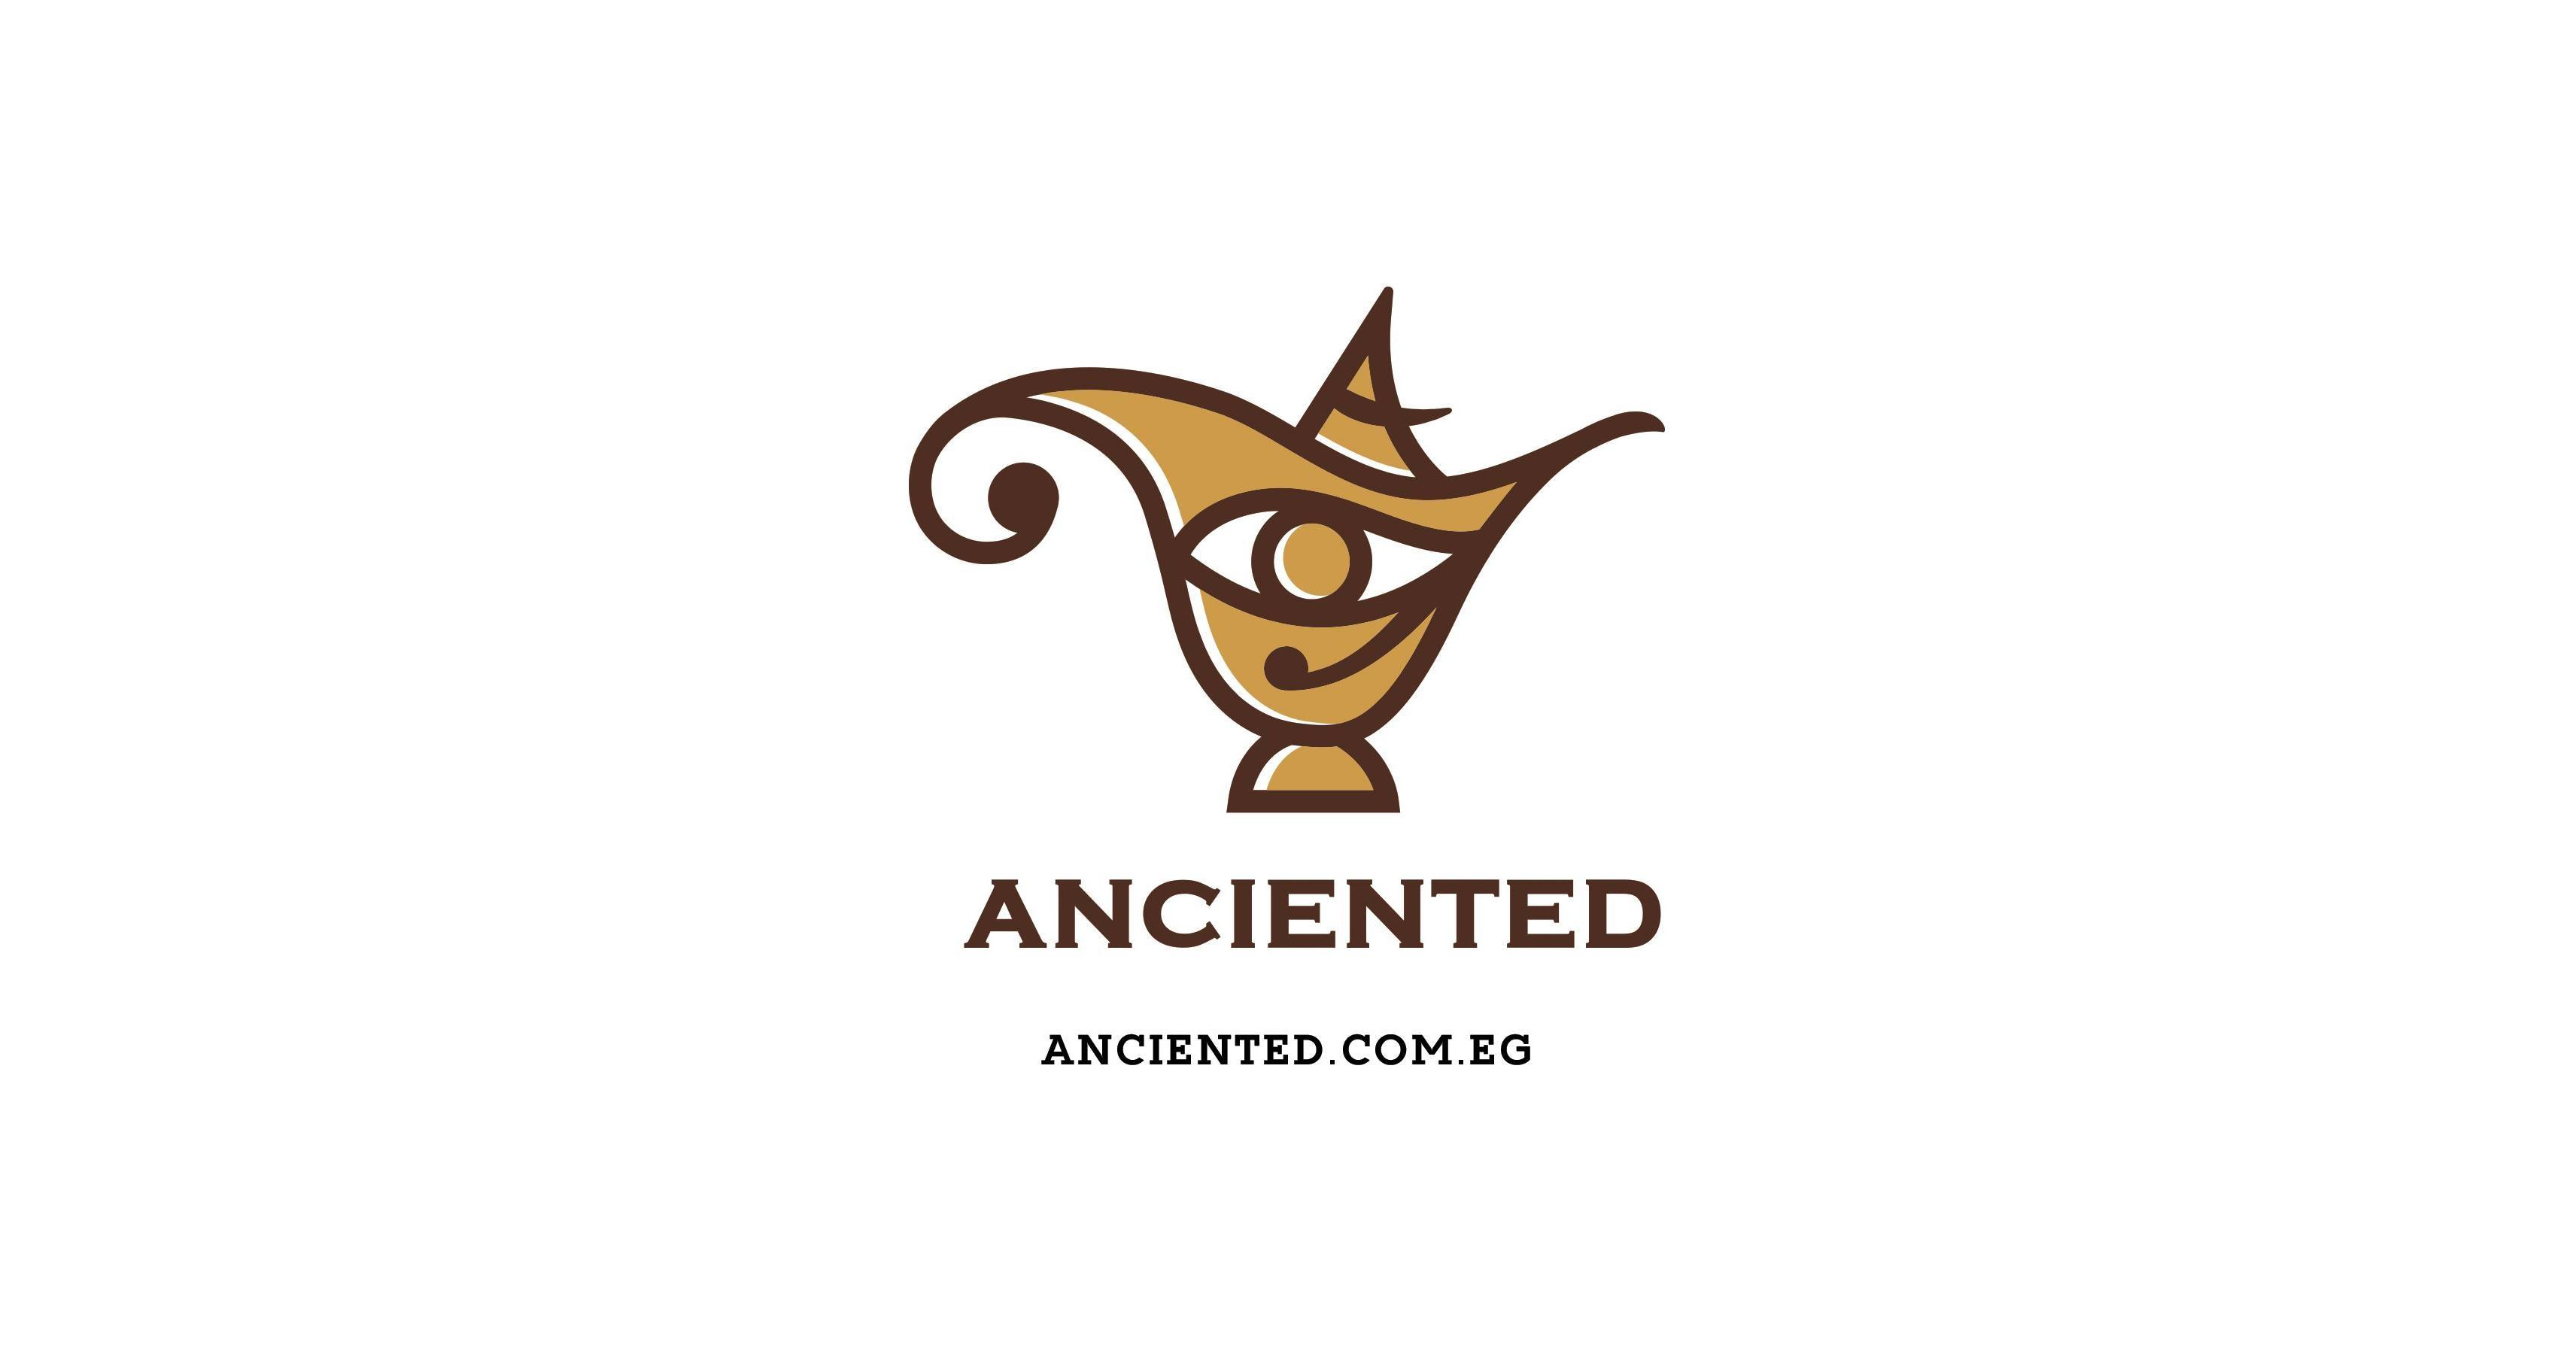 Job: Social Media Specialist at Anciented in Giza, Egypt